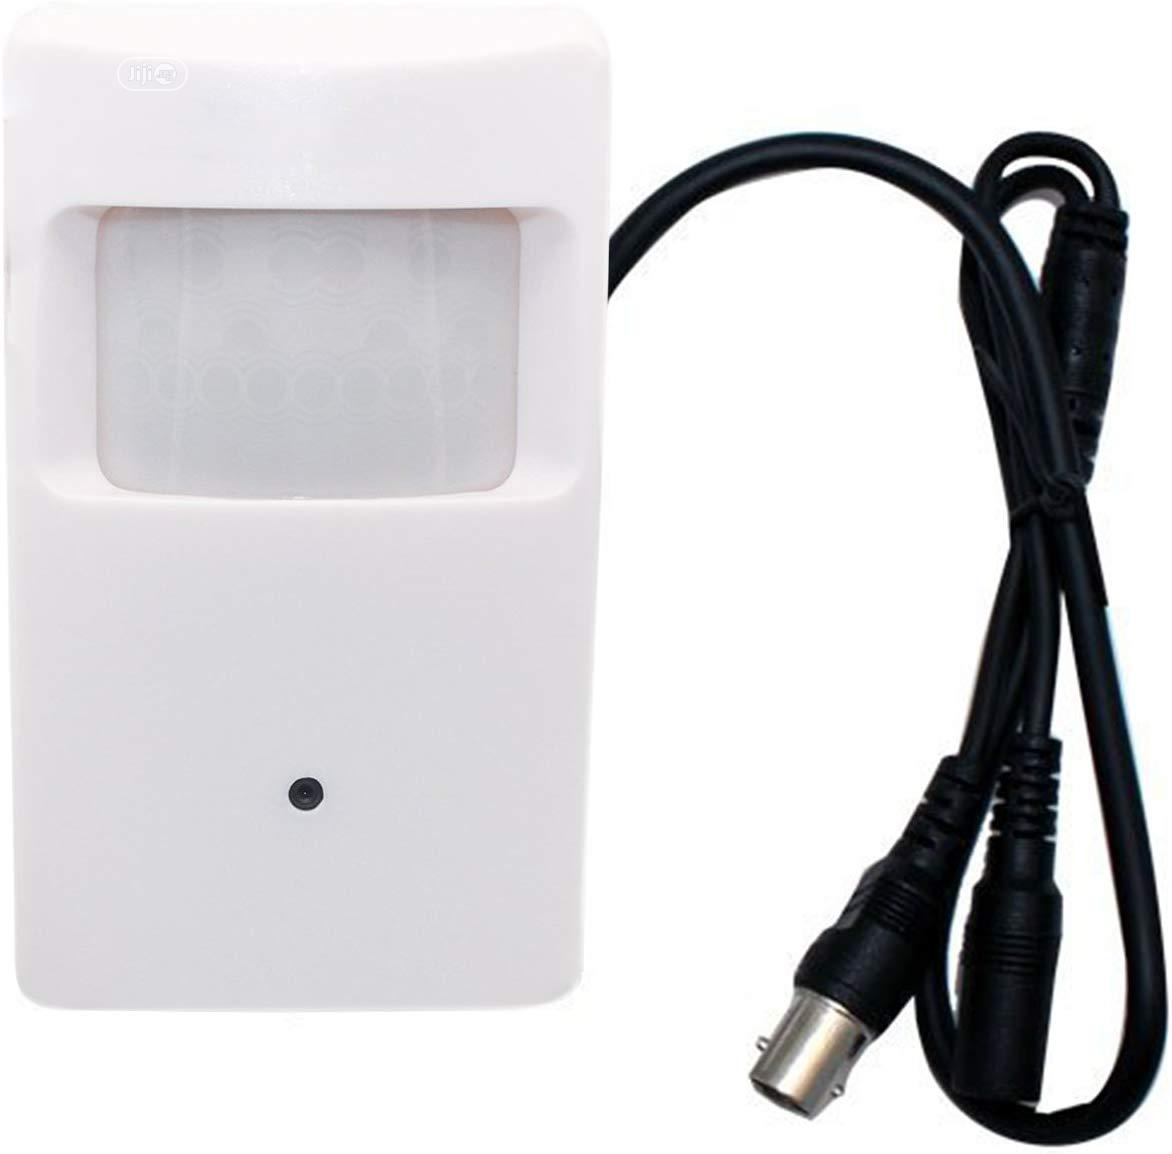 1/3-inch CCD Hidden Camera With 18 Units IR LED 700 Mm Lens Wide